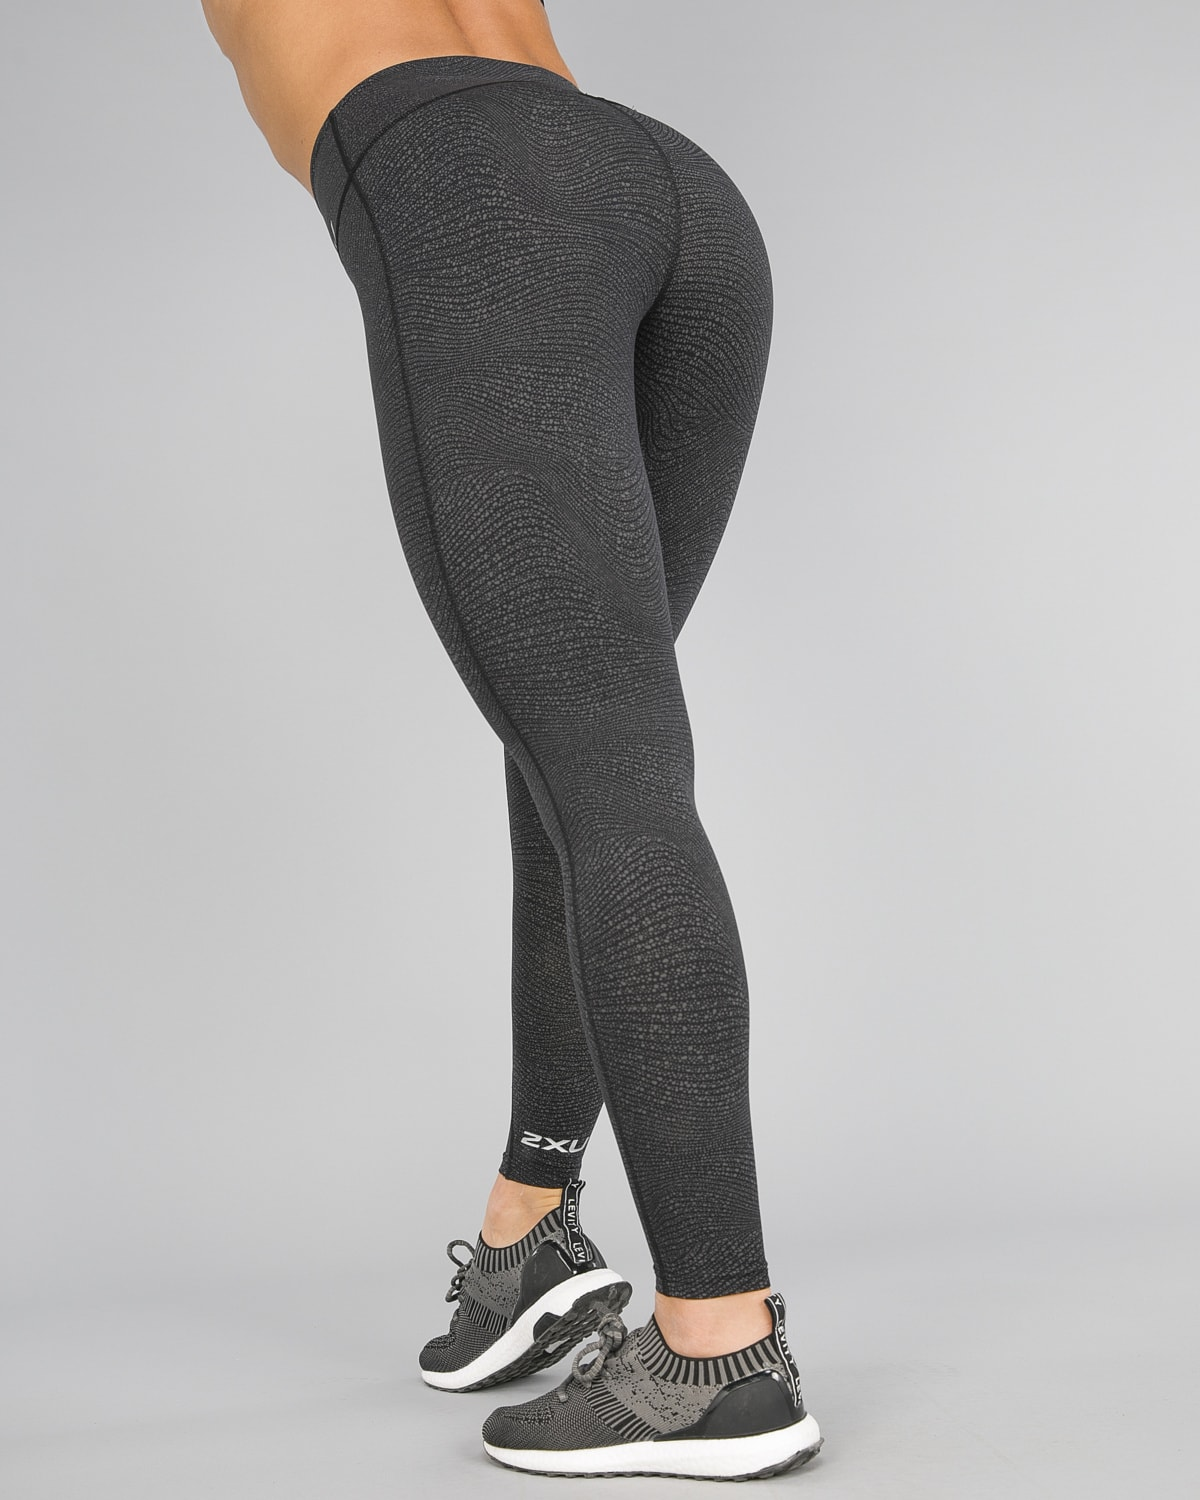 2XU Fitness Hi-Rise Comp Tights Women – Wave Spot Charcoal:Silver16